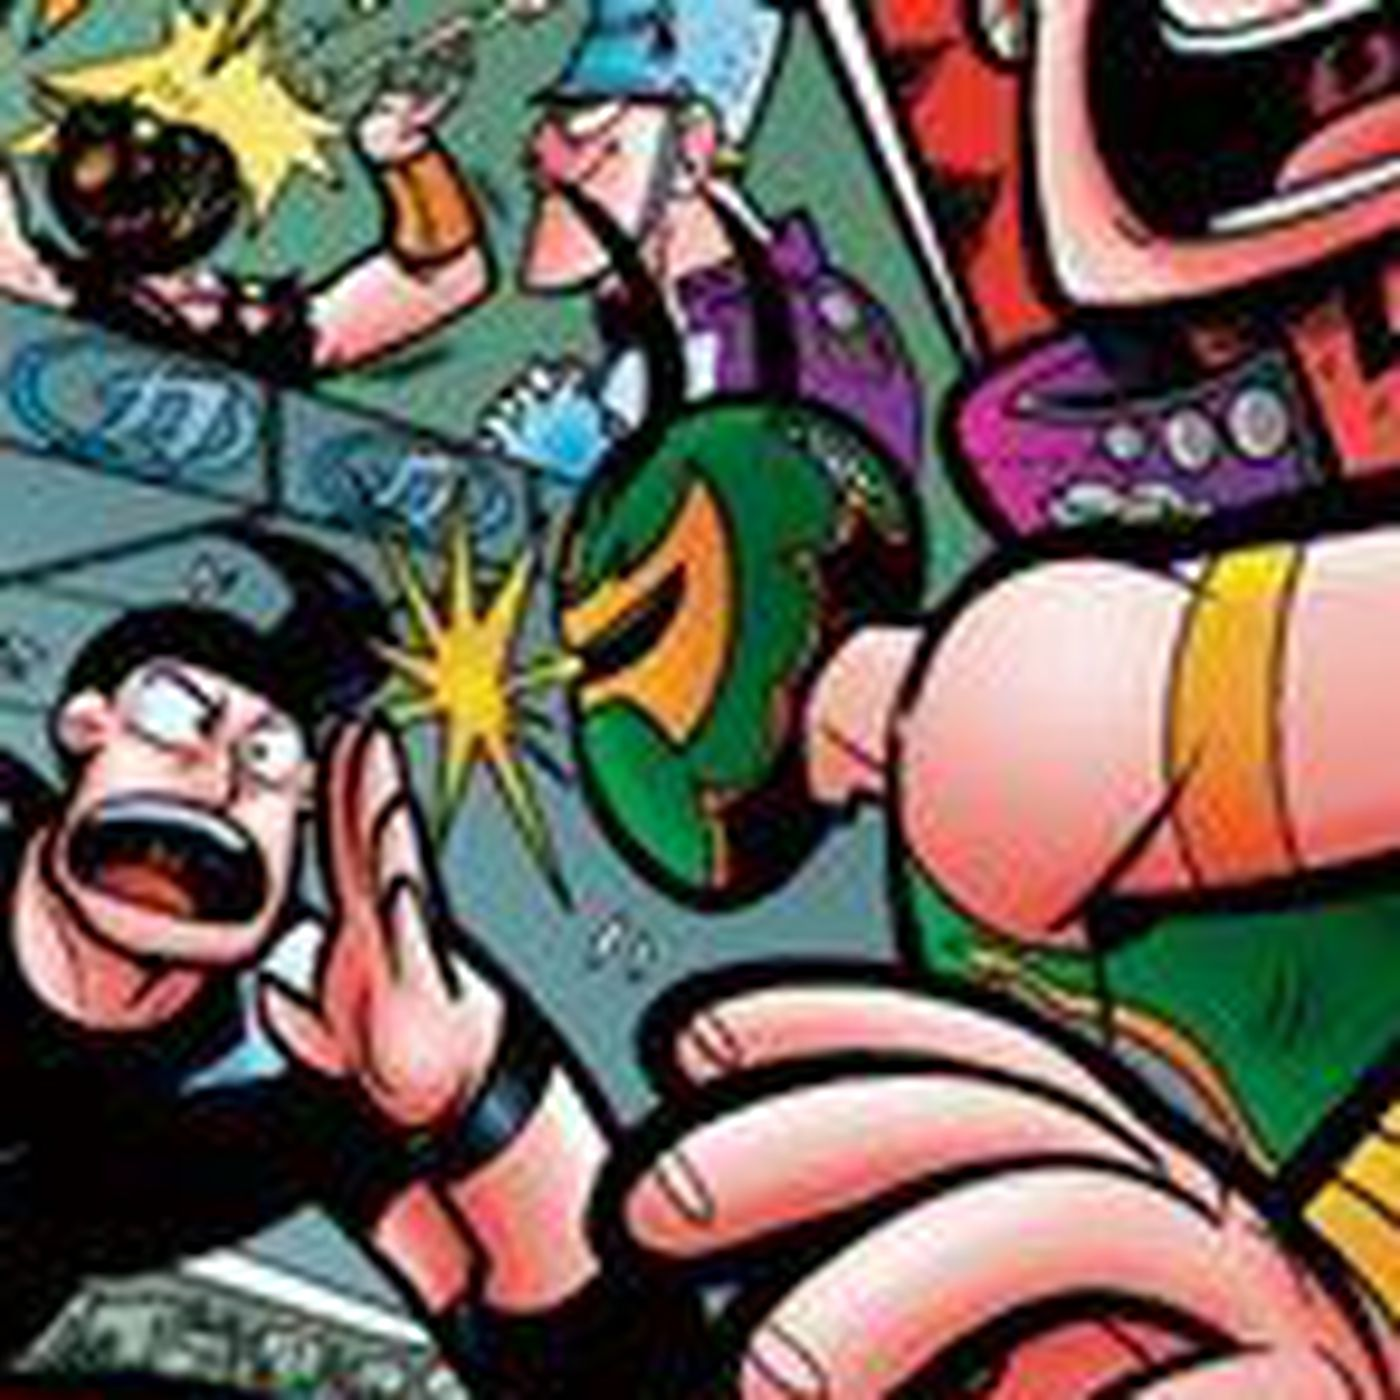 CHIKARA - The Thirteenth Hat DVD review - Cageside Seats